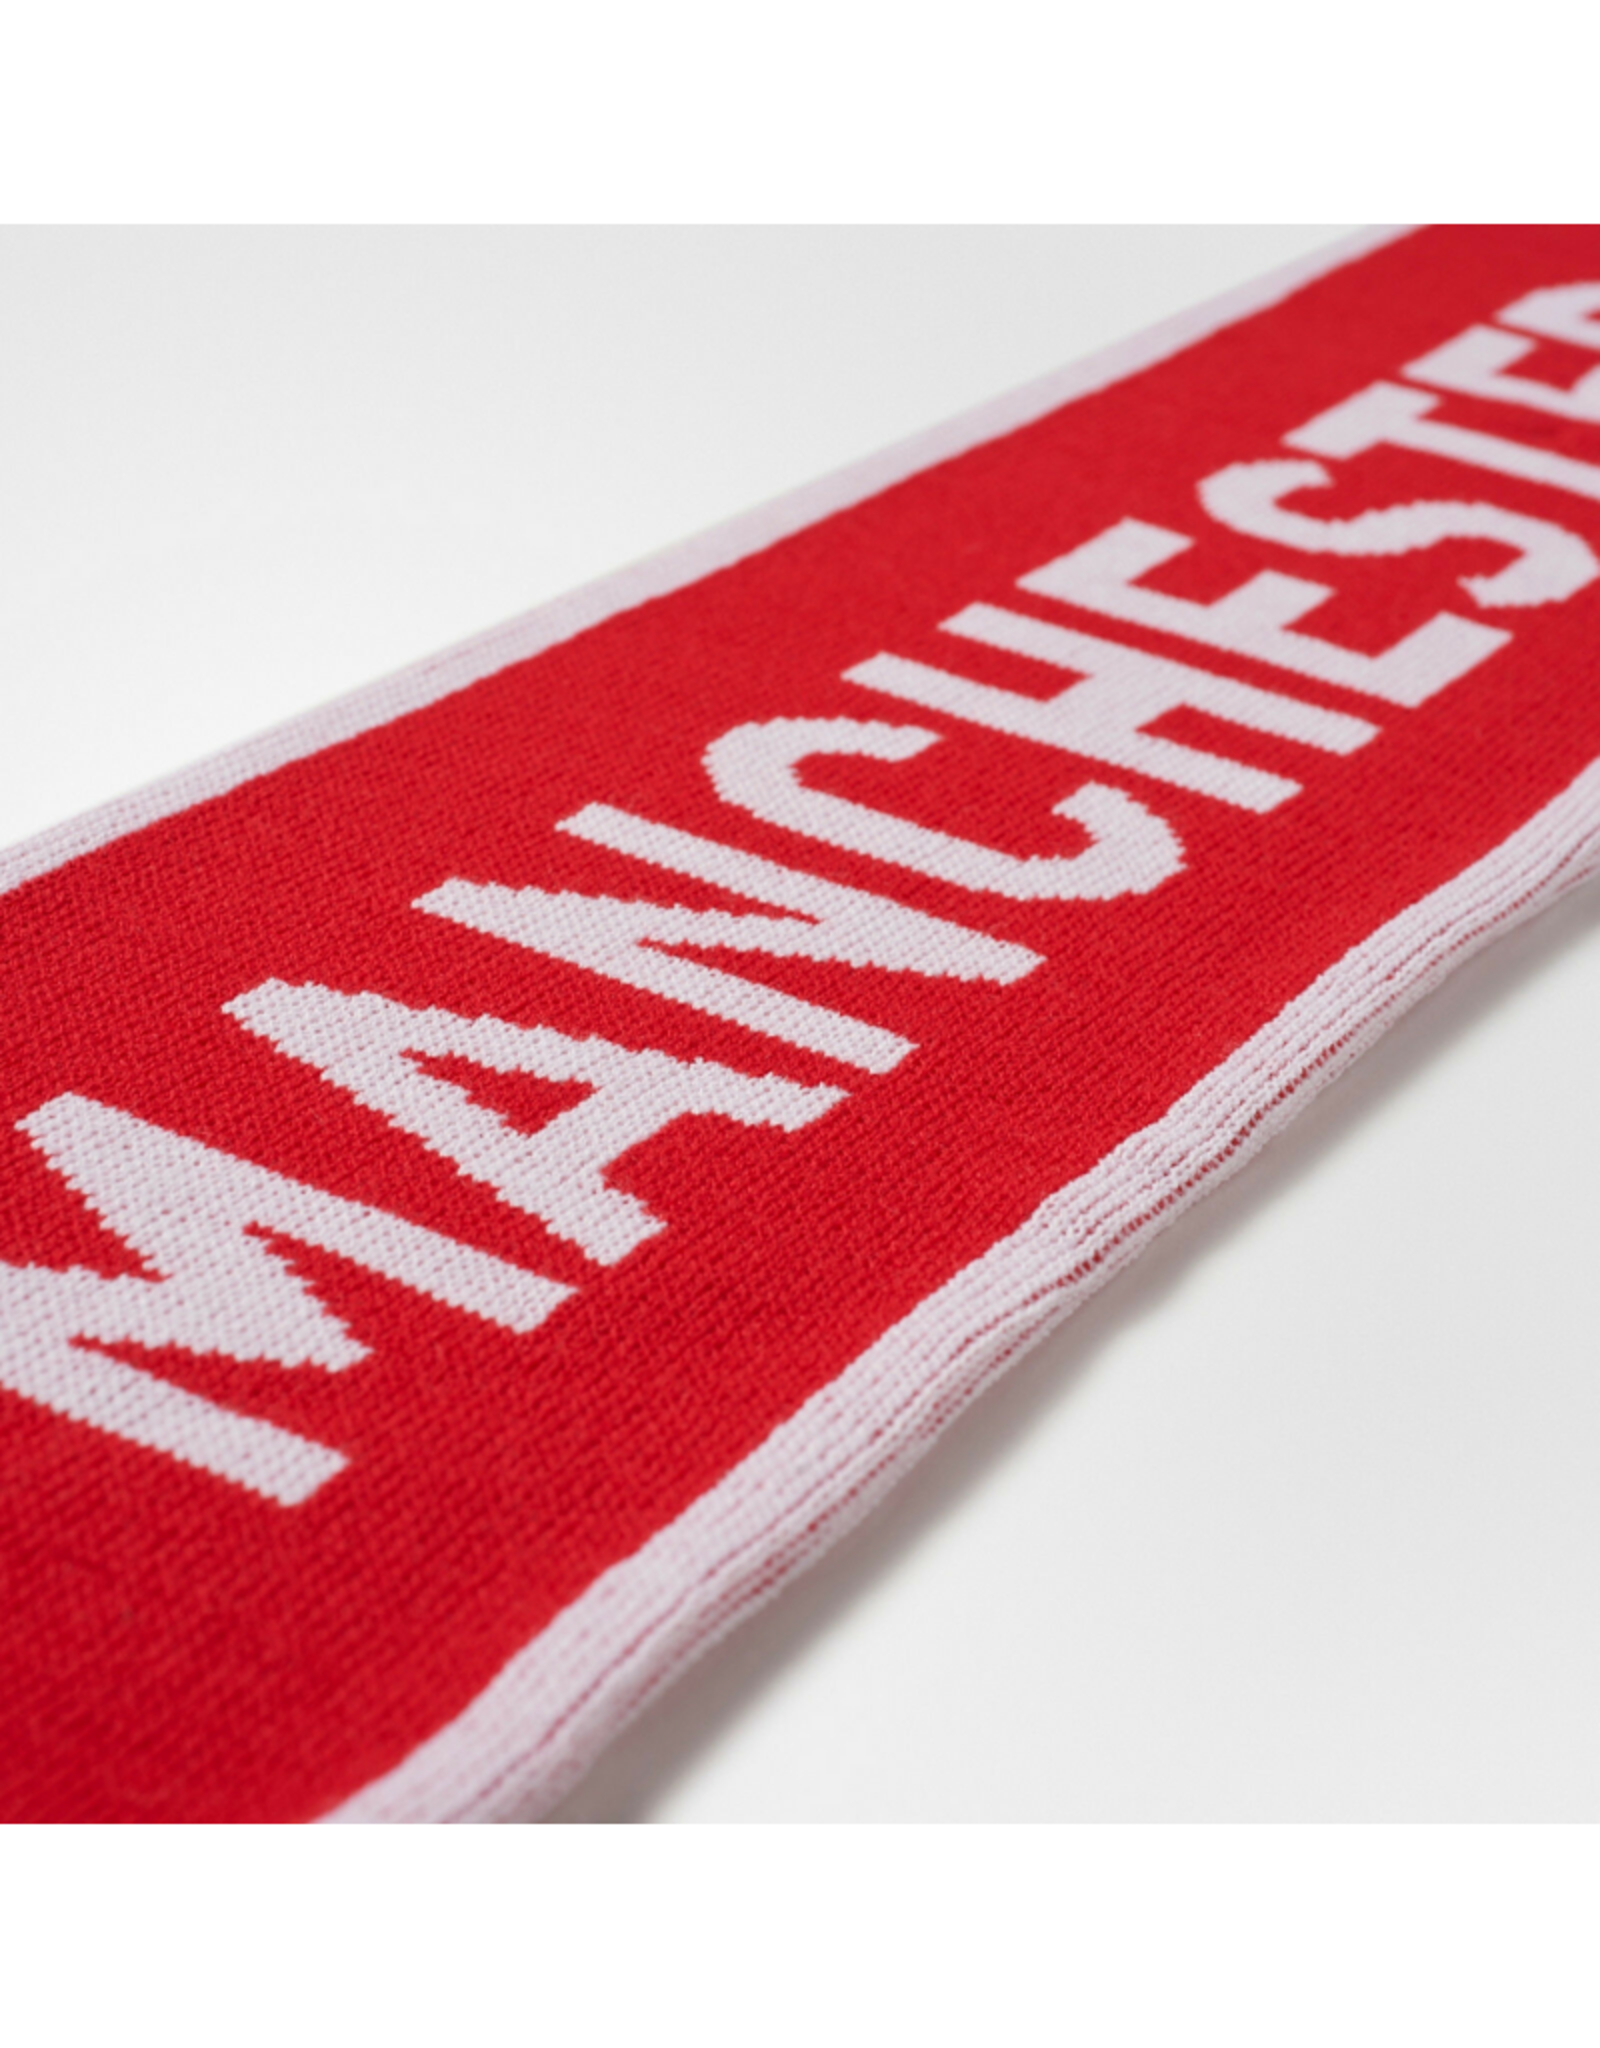 Adidas Adidas Soccer Scarf Manchester United Red